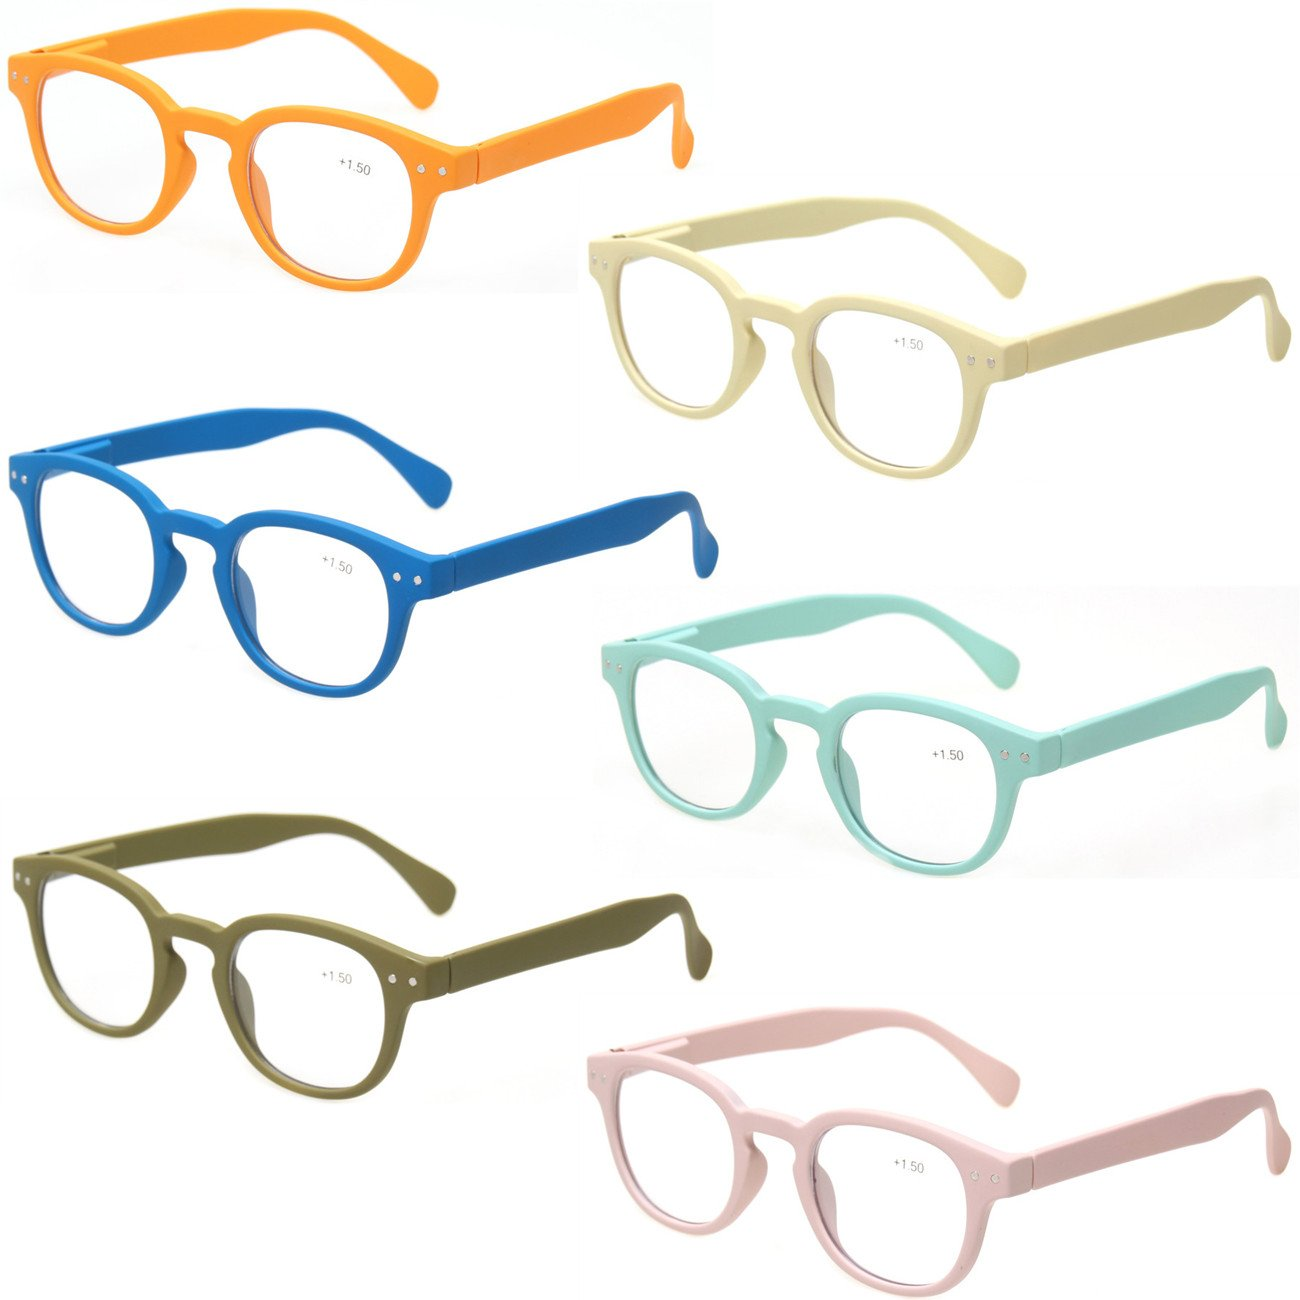 Reading Glasses 6 Pack Great Value Quality Readers Spring Hinge Color Glasses (6 Pairs MIx Color, 3.00) by Kerecsen